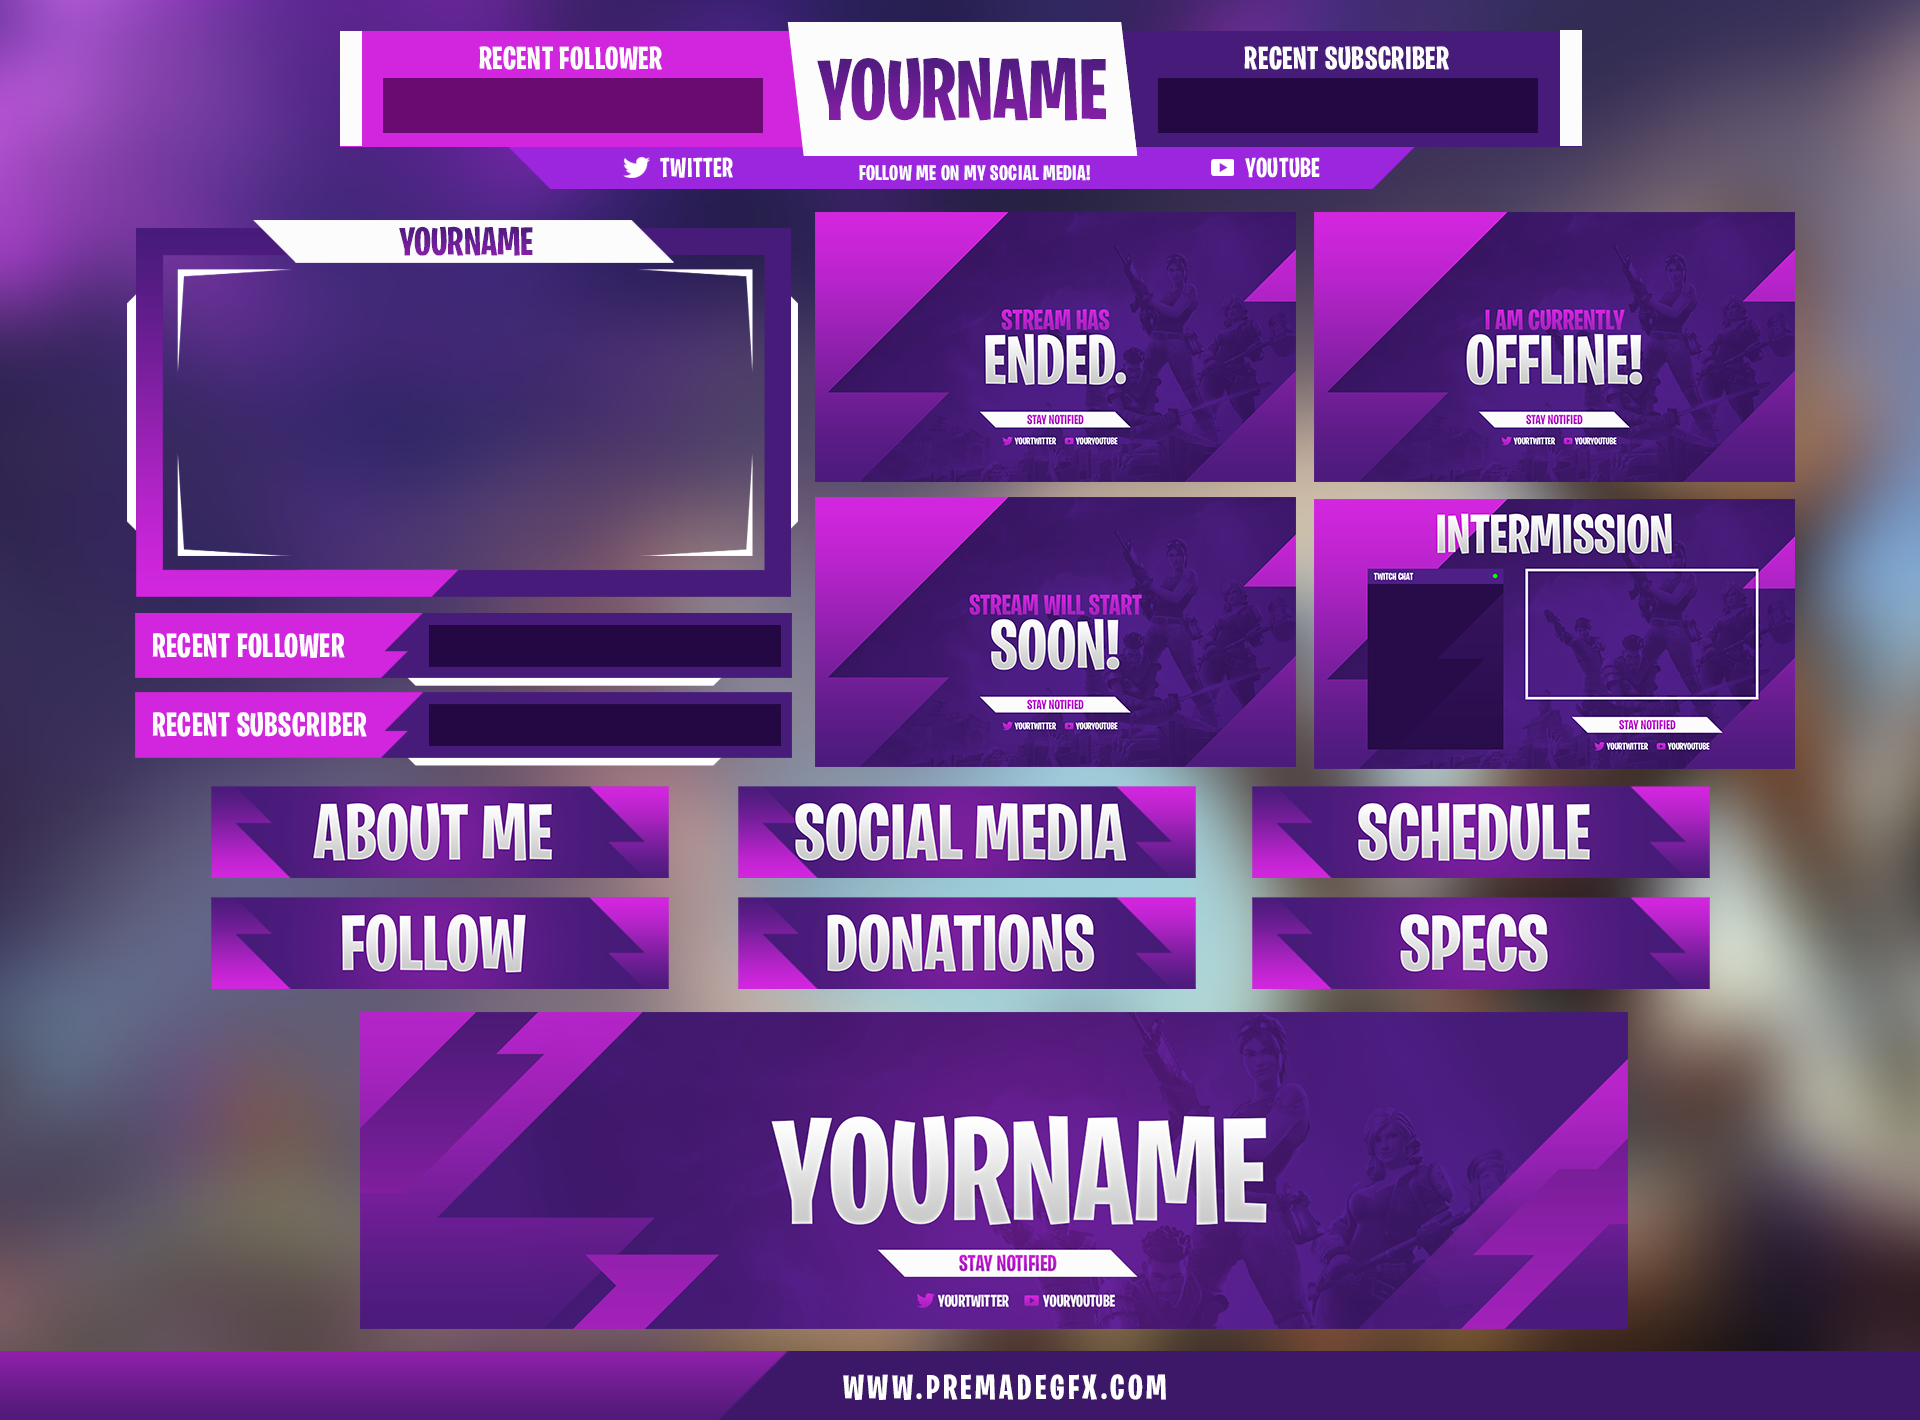 fortnite twitch pack premadegfx banners Twitch, How to